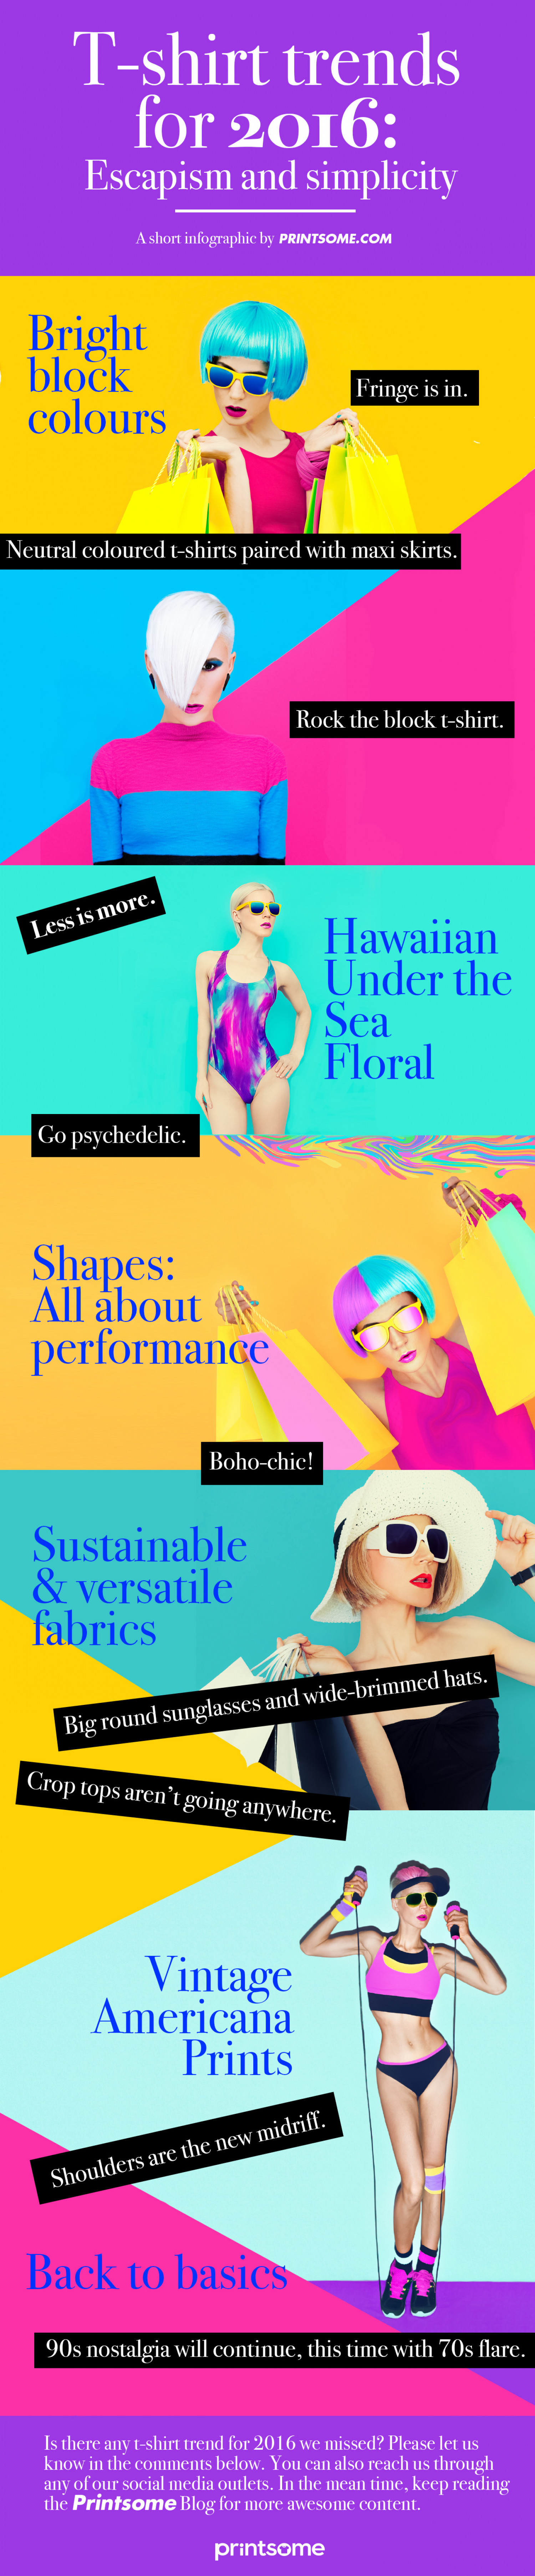 [INFOGRAPHIC] T-shirt Trends for 2016: Escapism and Simplicity Infographic